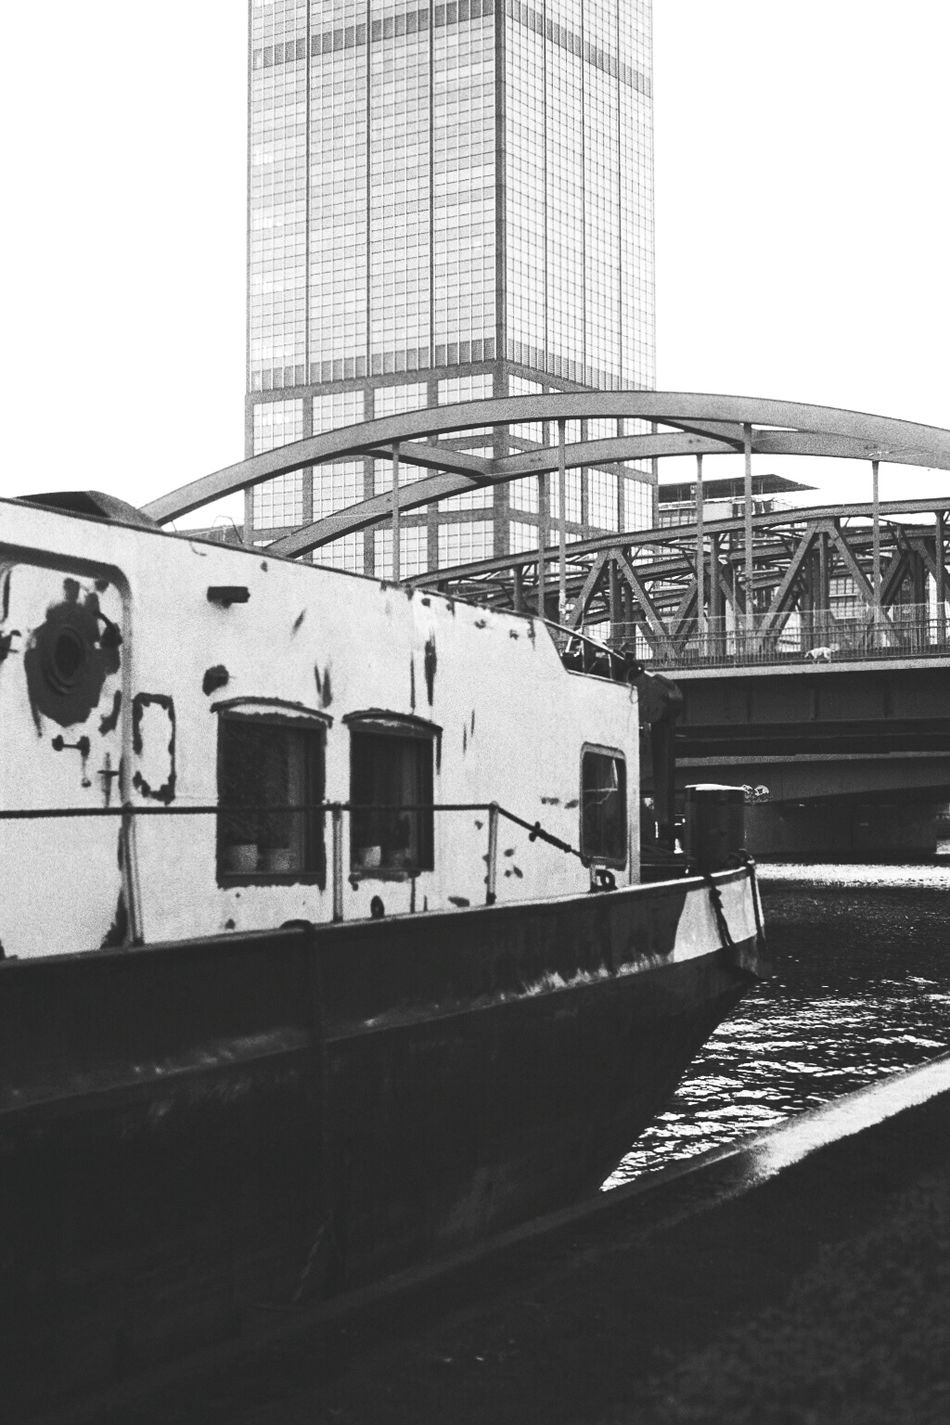 Berlin Blackandwhite Black And White Analog Sunday Black & White Film Film Photography Analogue Photography Leicam 50mmSummicron Leica_camera I Love My City Learn & Shoot: Layering Multiple Layers Boat Bridge Sky Is The Limit Water Rummelsburger Bucht My Fuckin Berlin Berliner Ansichten Bridge - Man Made Structure Structures Monochrome